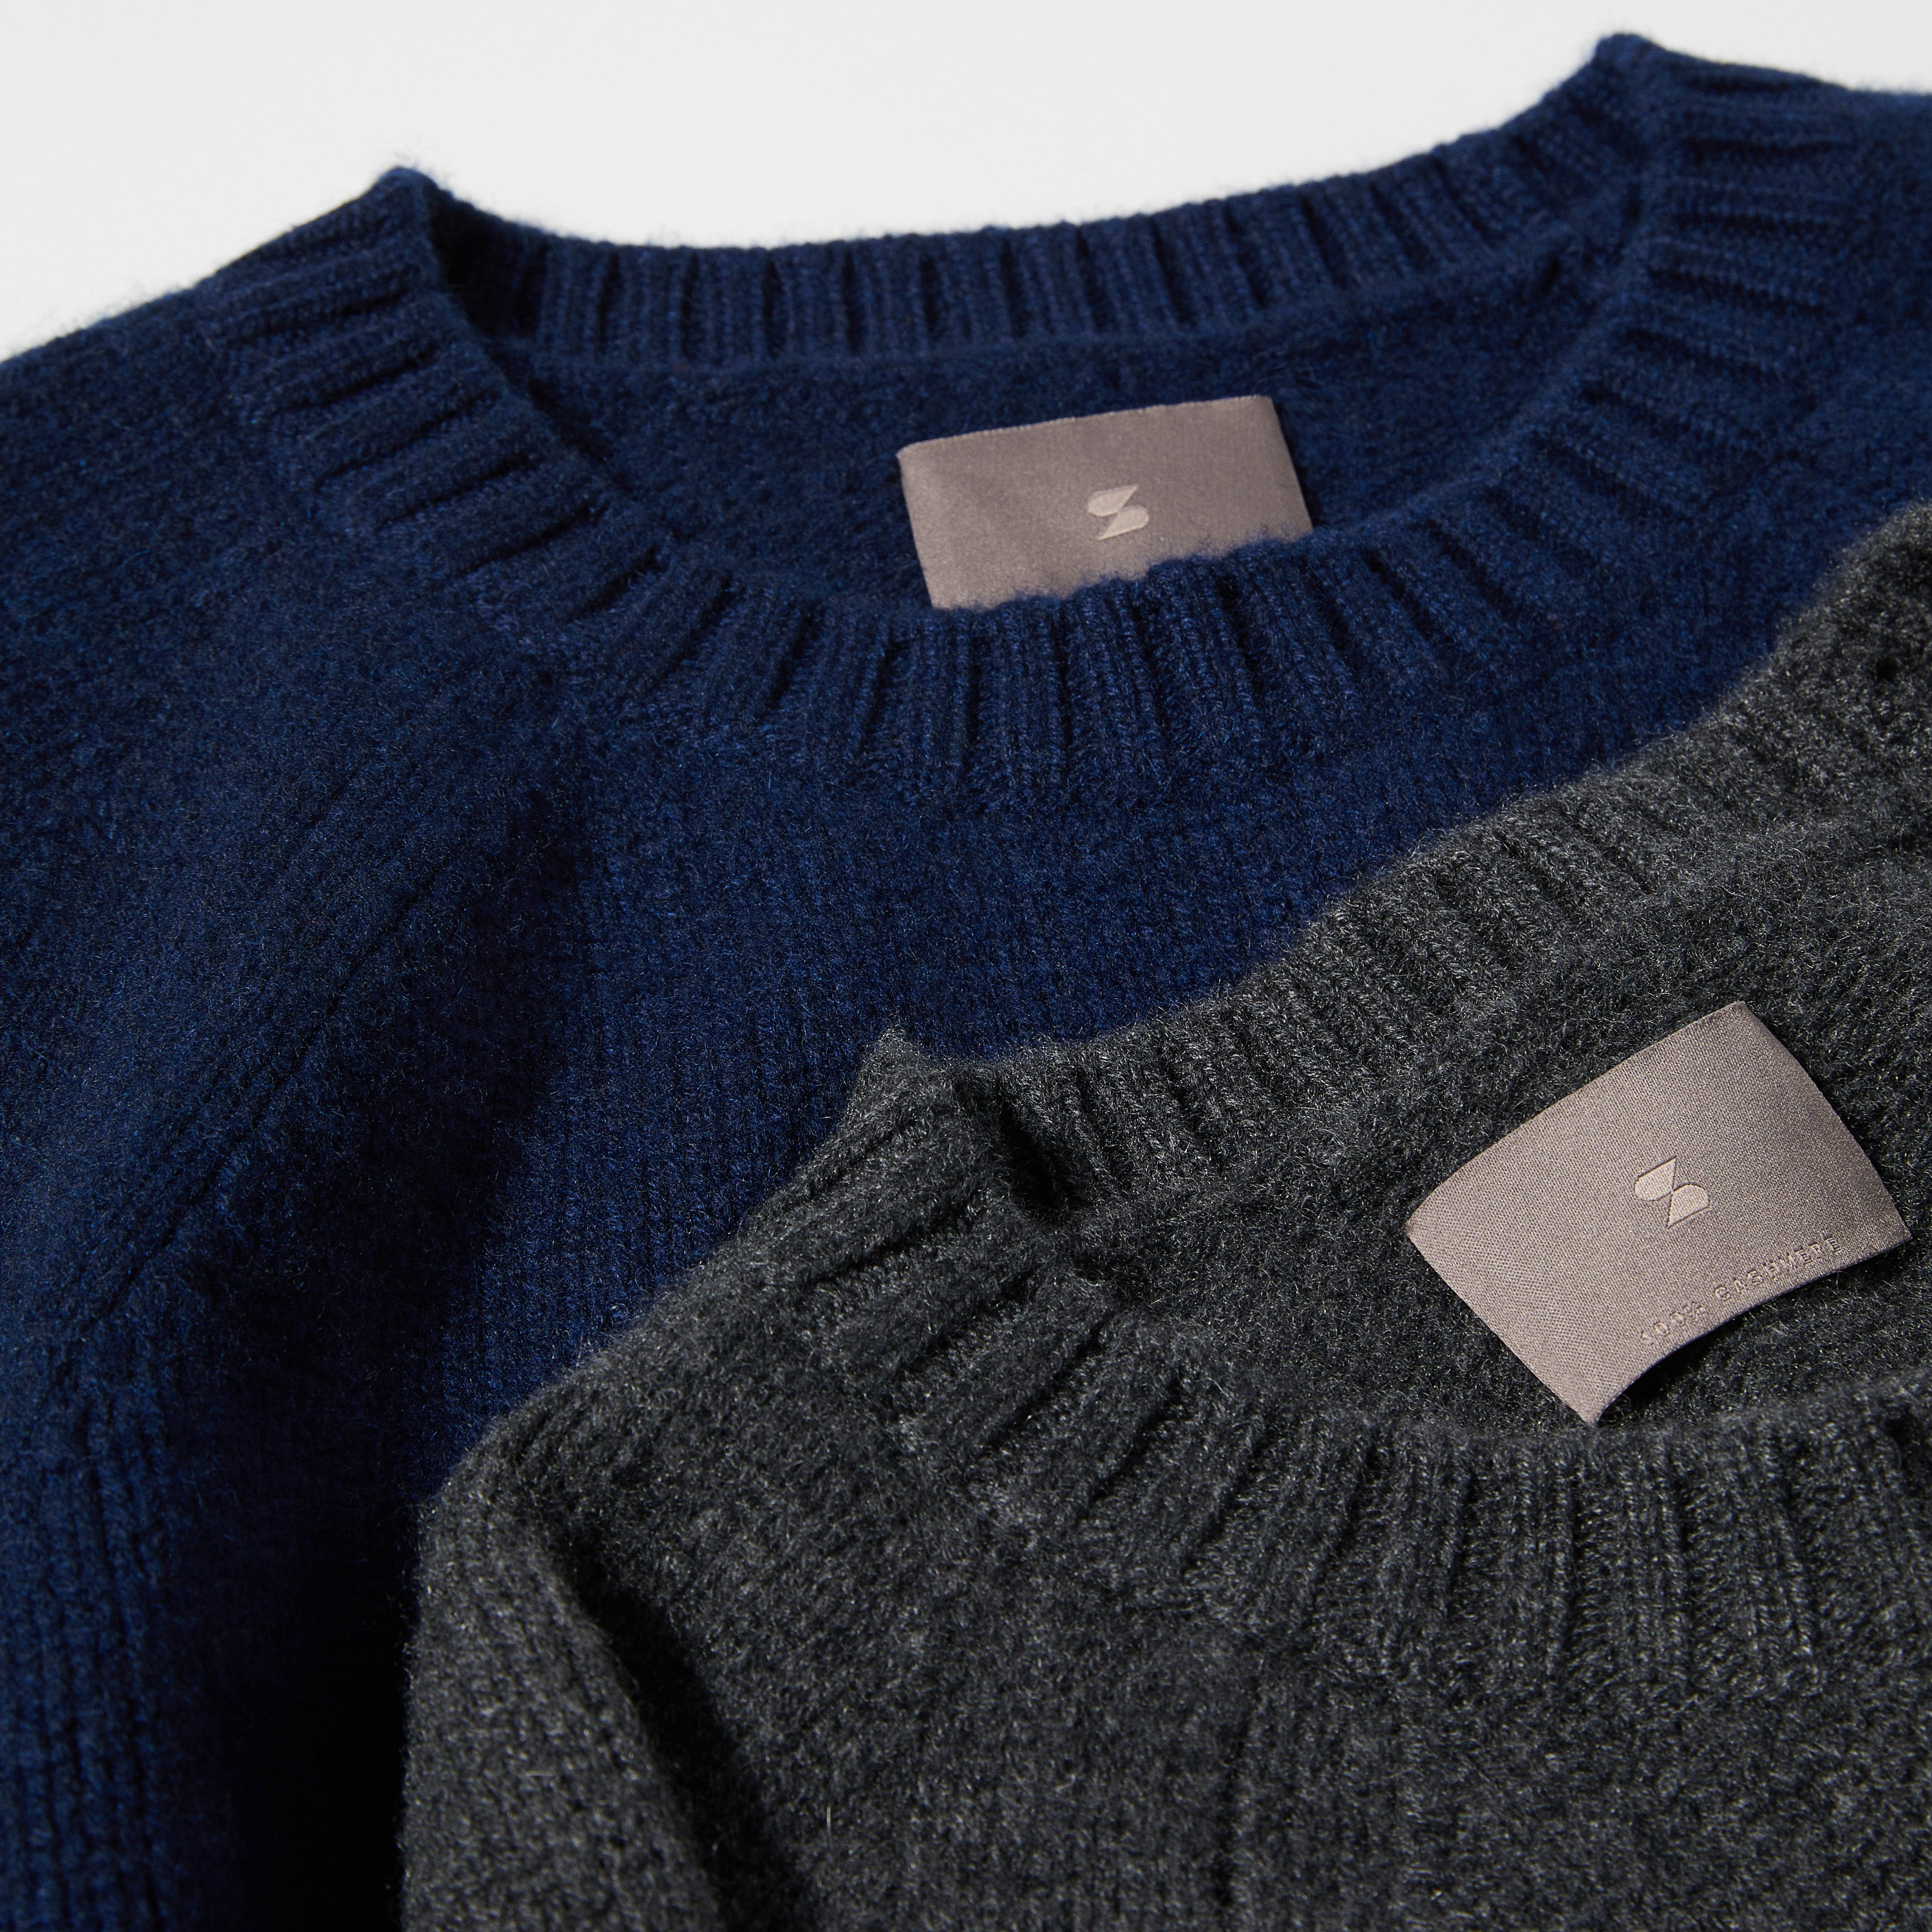 Cashmere Clothing and Accessories